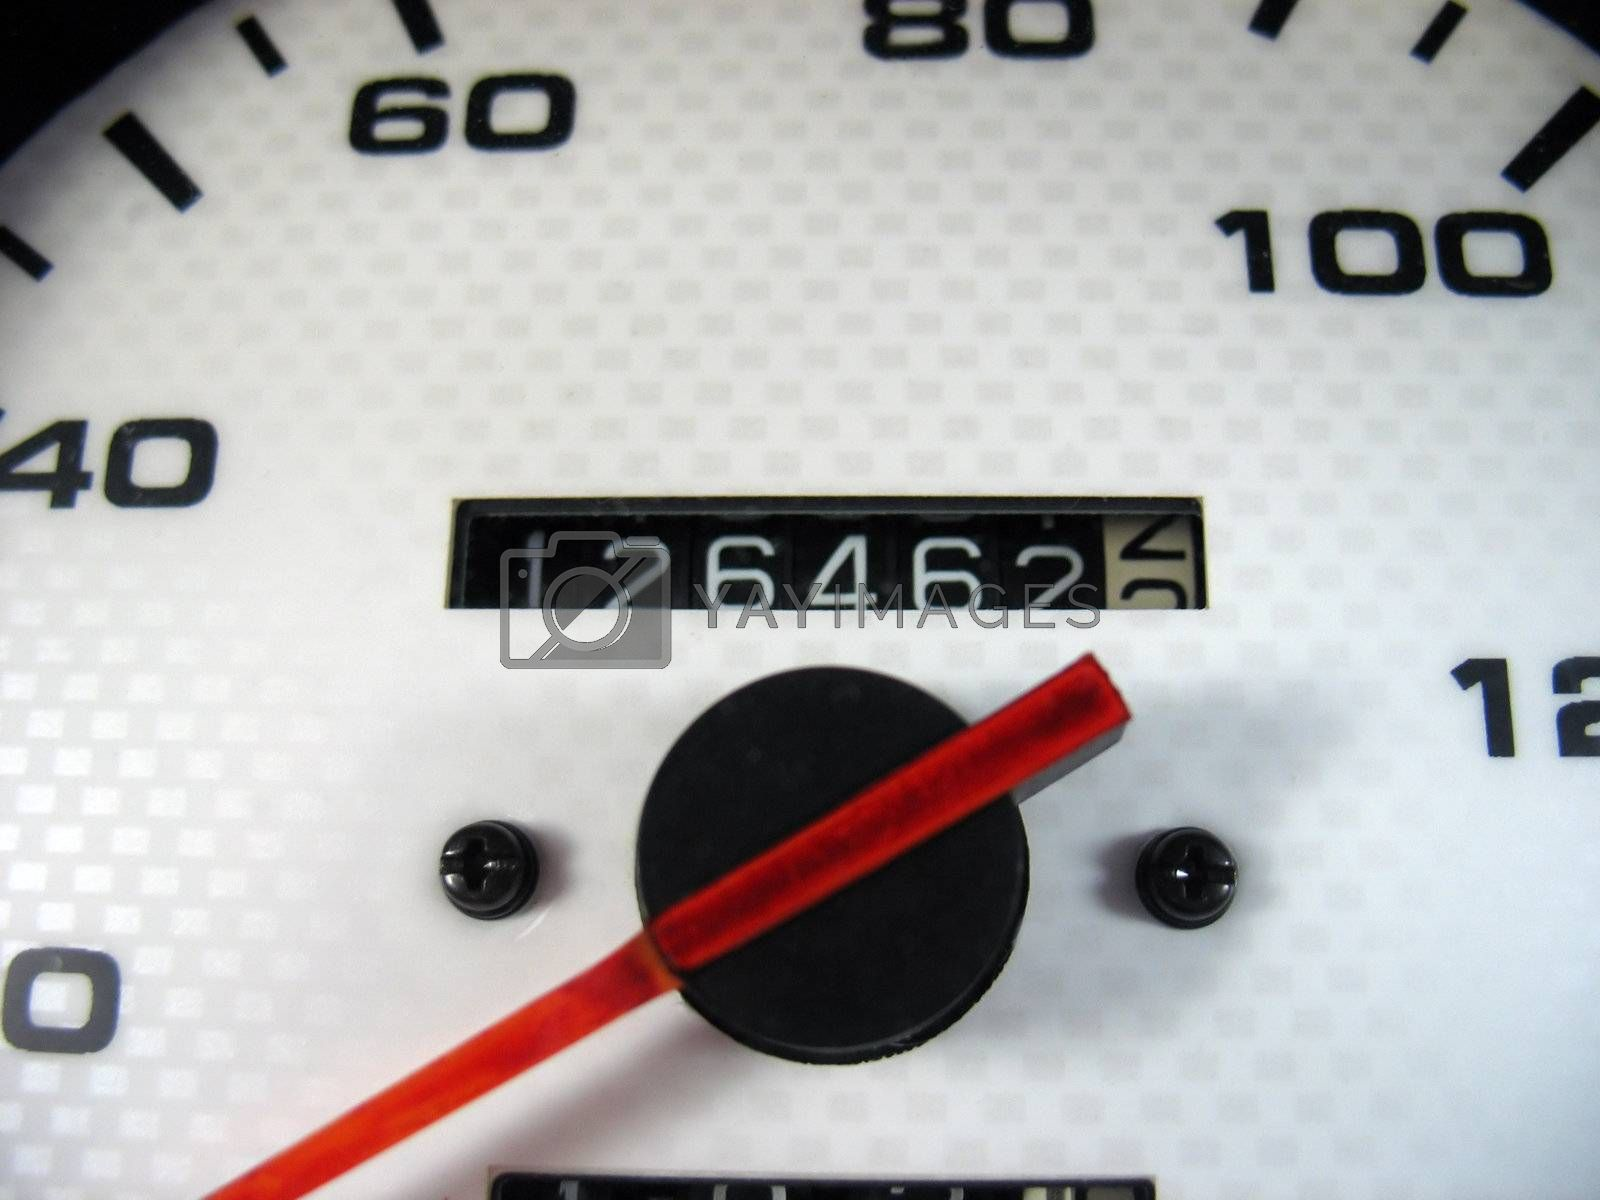 A macro shot of a speedometer & odometer from a car.